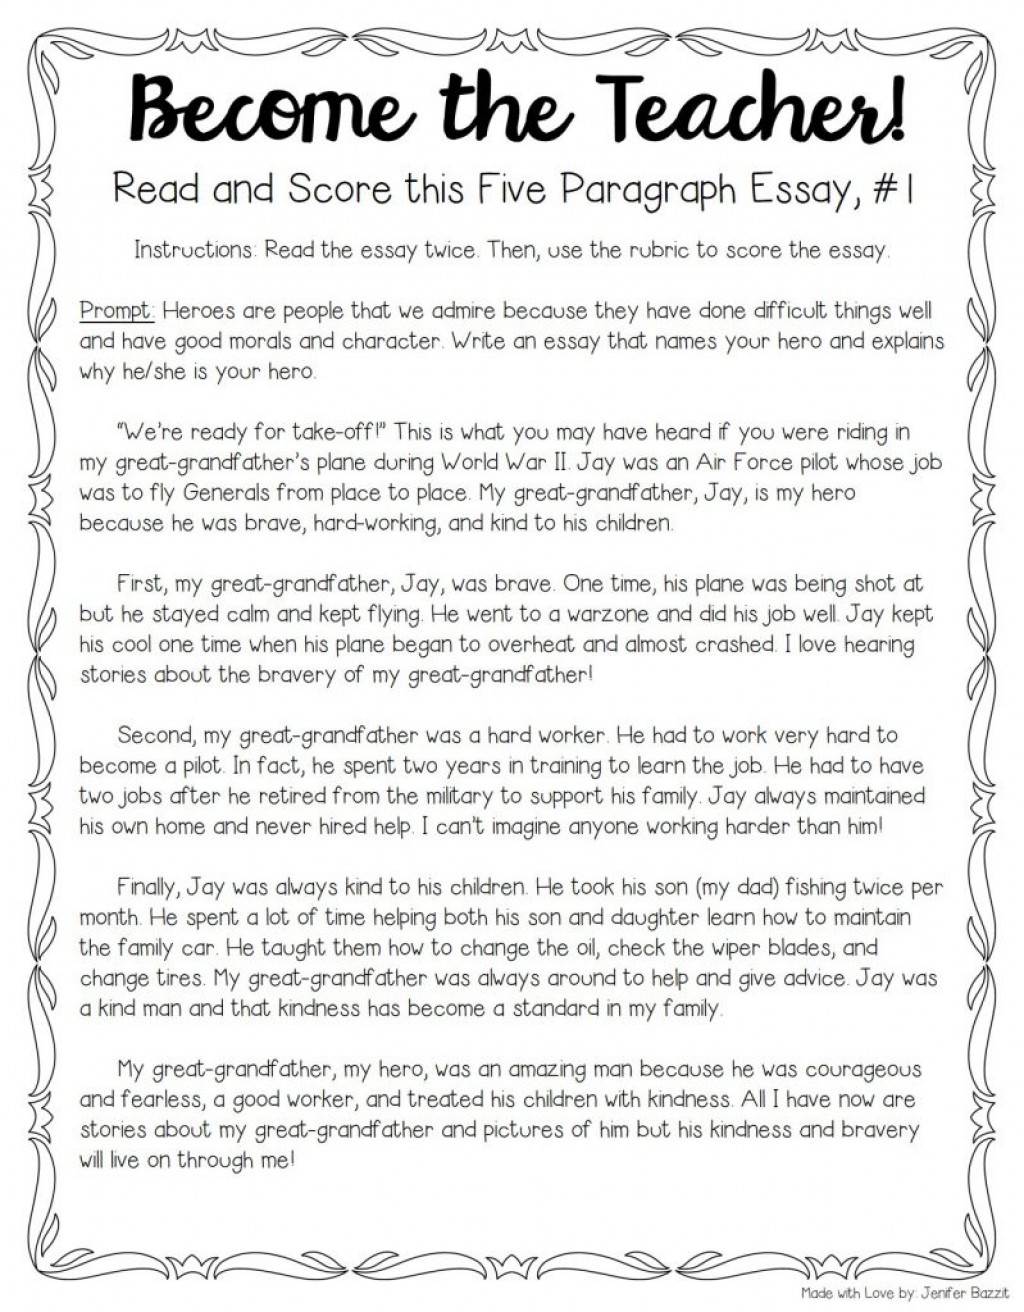 008 Essay Example One Paragraph Five Full Awesome About Dwarfism Topics Large